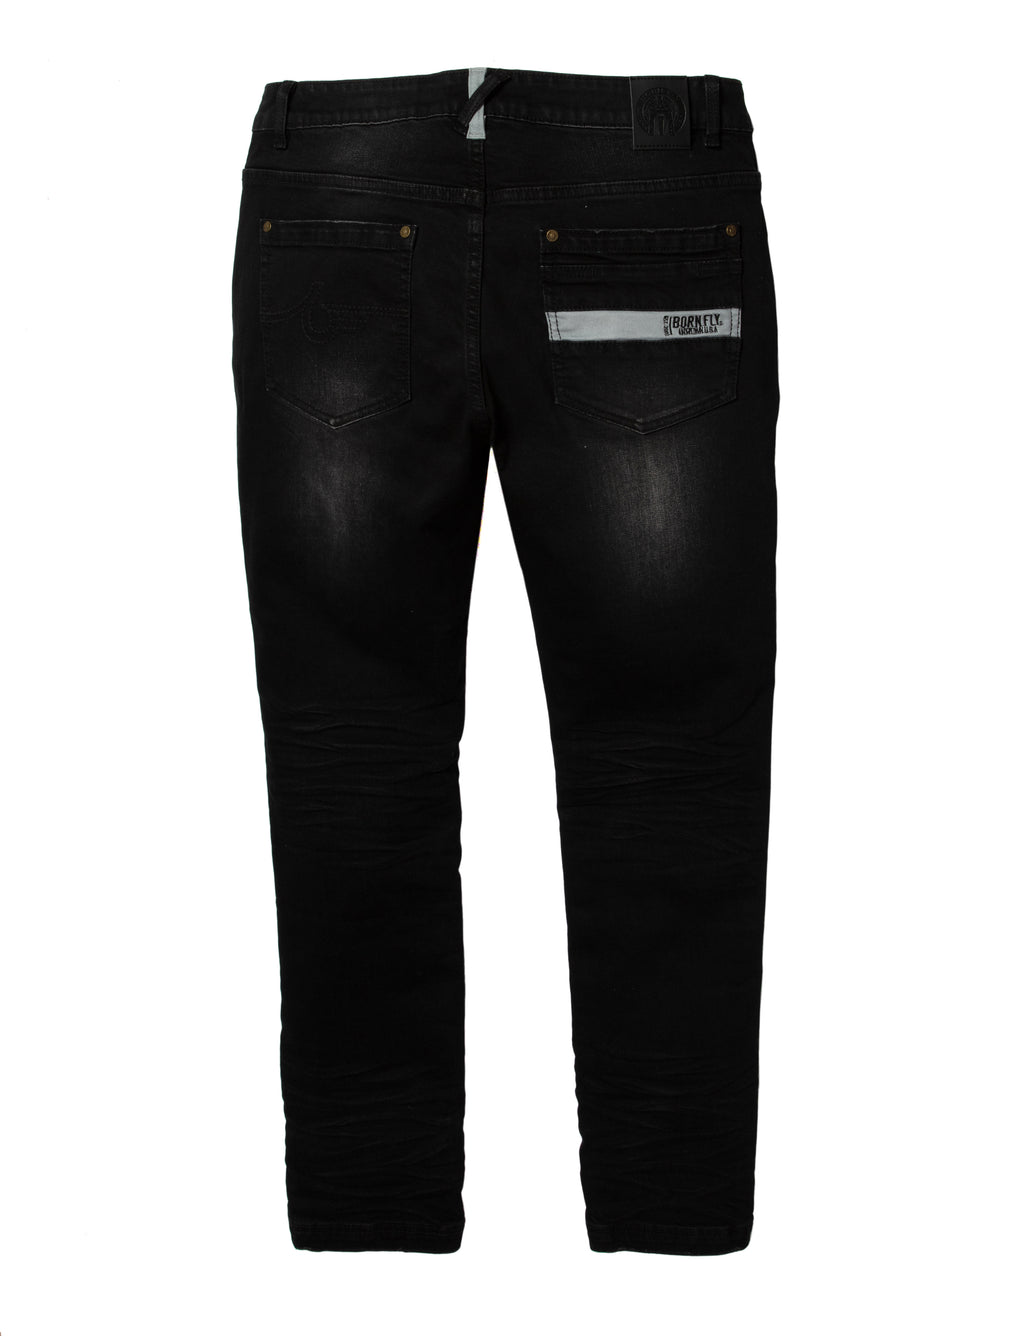 Big & Tall - Black Panther Denim Jean